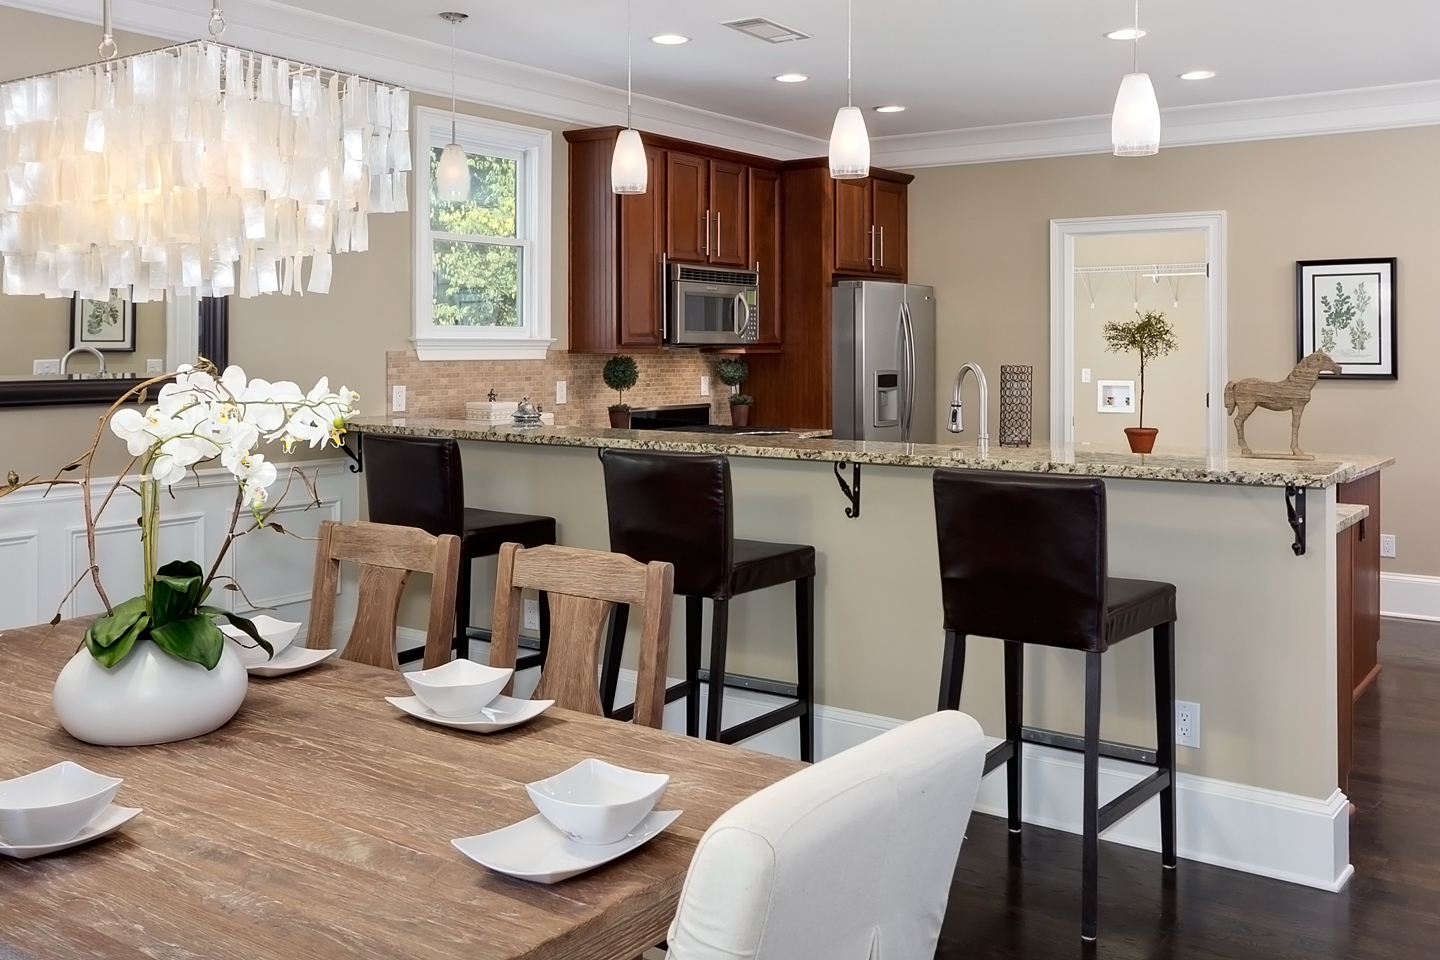 Kitchen And Dining Room Interior Photo Of Atlanta Home For Sale